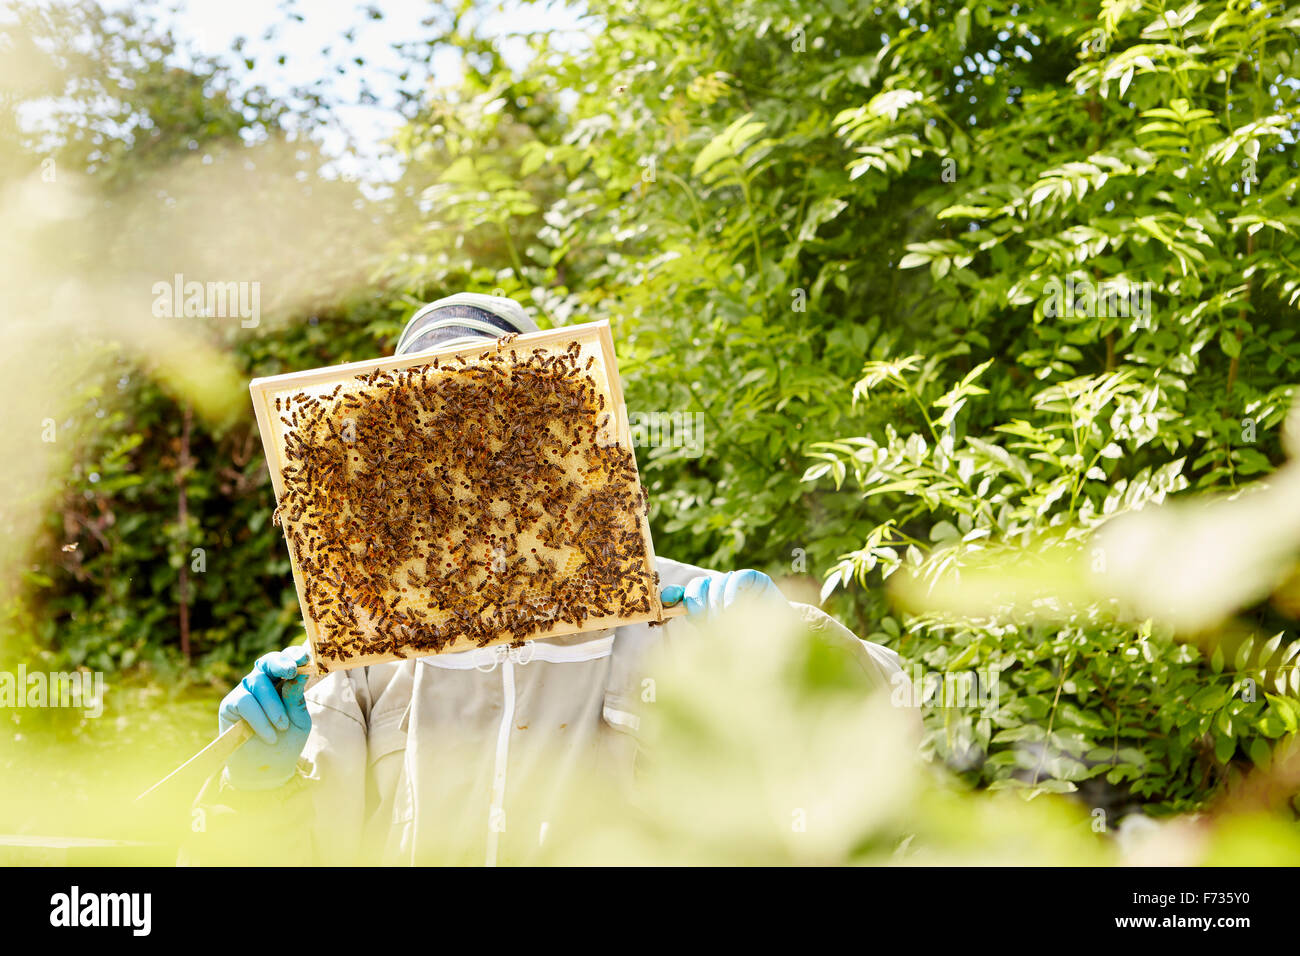 A beekeeper holding up and checking a honeycomb frame from a beehive. - Stock Image